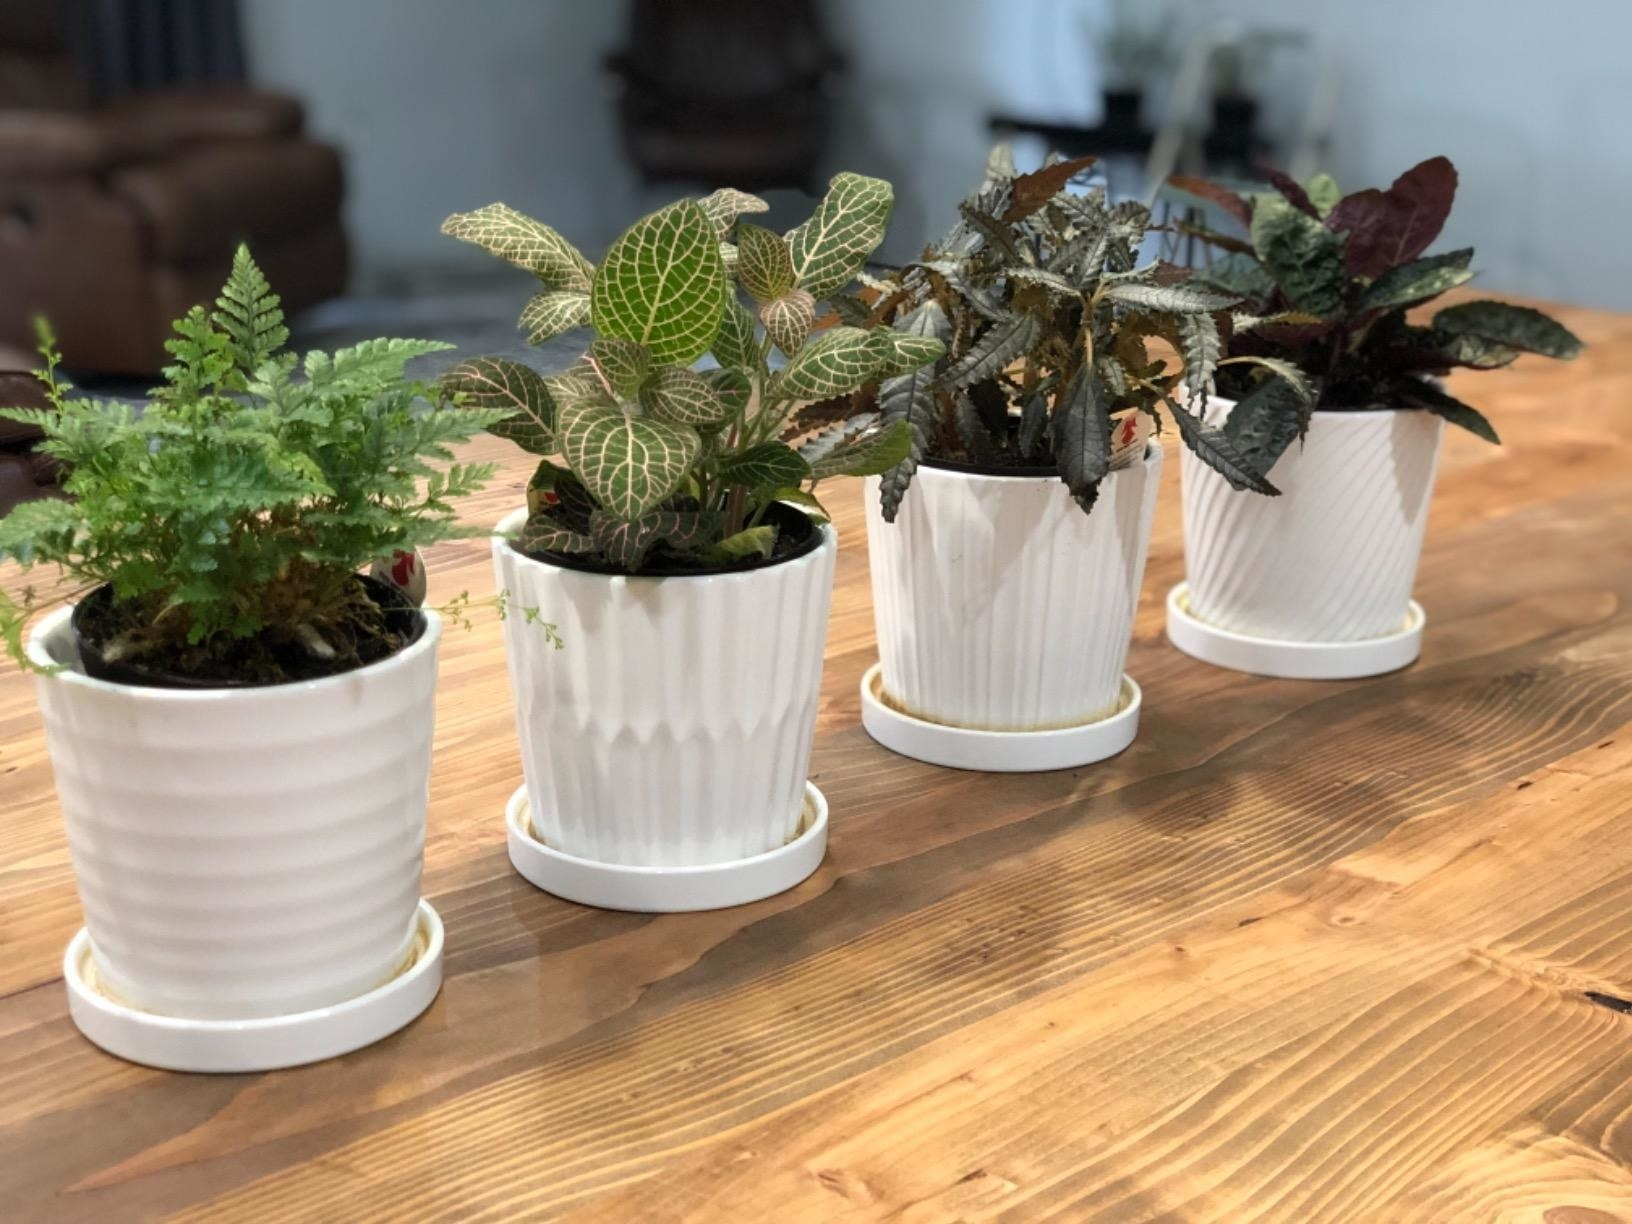 Four white planters with different lined exterior textures and drain basins